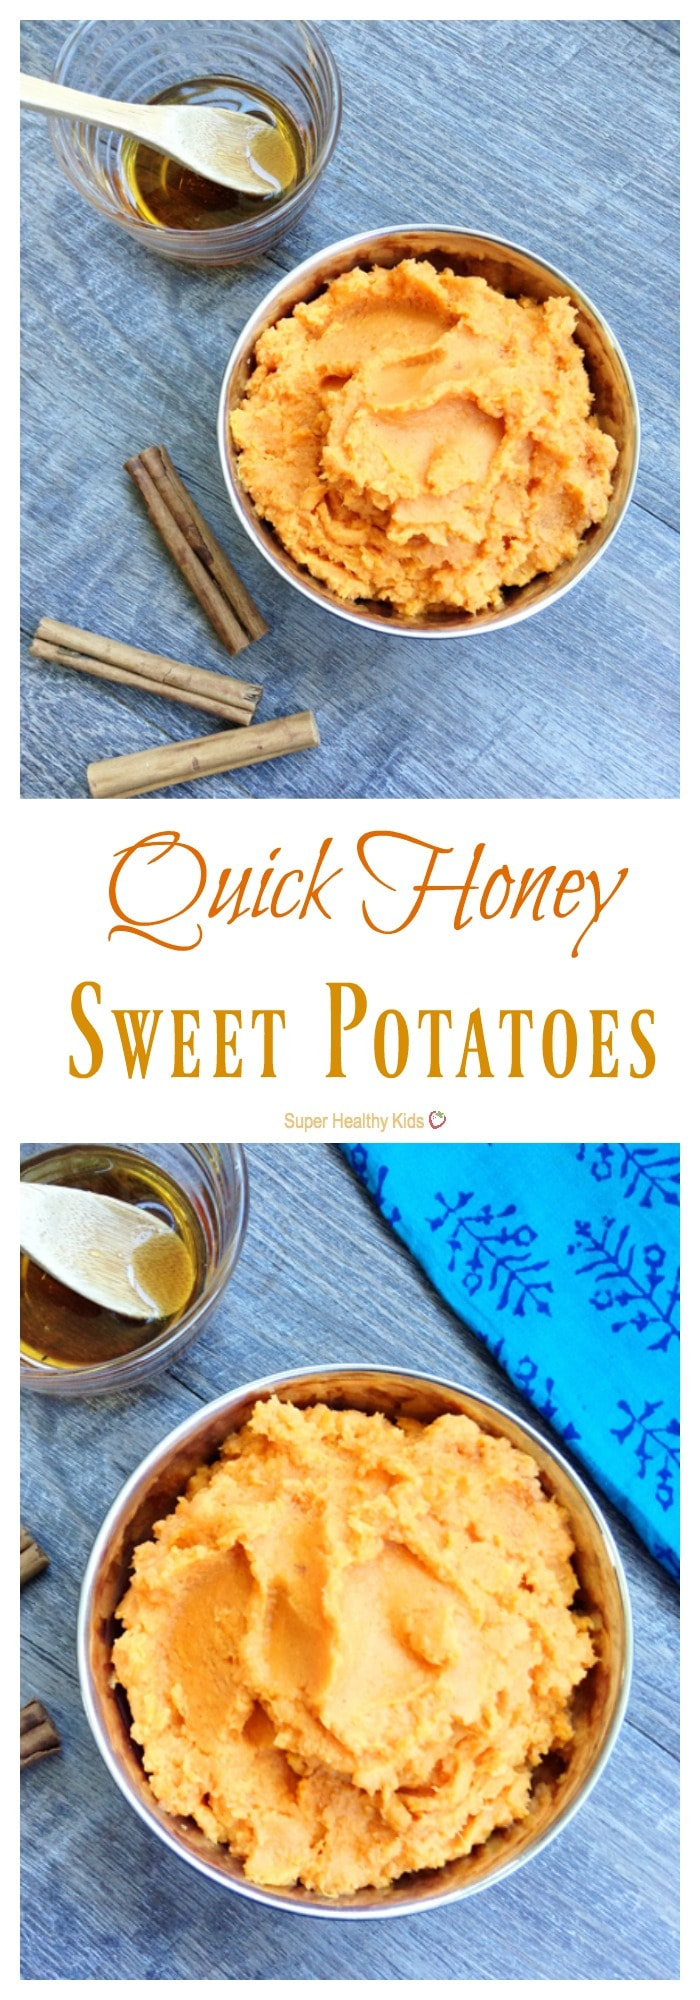 Quick Honey Sweet Potatoes. Delicious twist on this classic side dish! http://www.superhealthykids.com/quick-honey-sweet-potatoes/